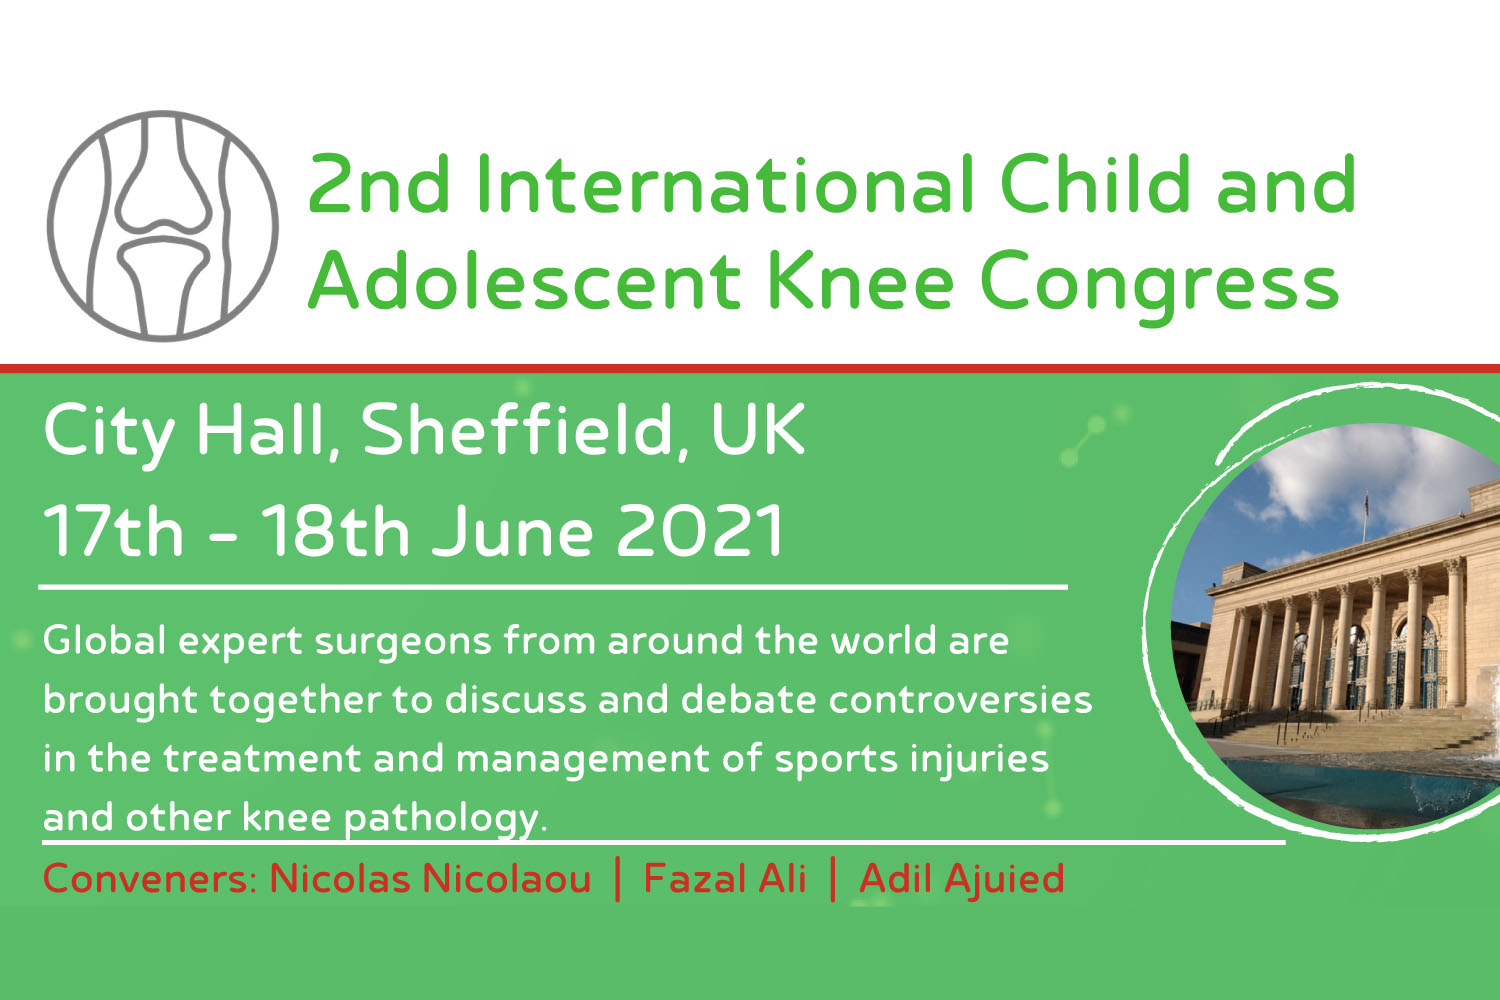 Nev talking at the 2nd International Child and Adolescent Knee Congress